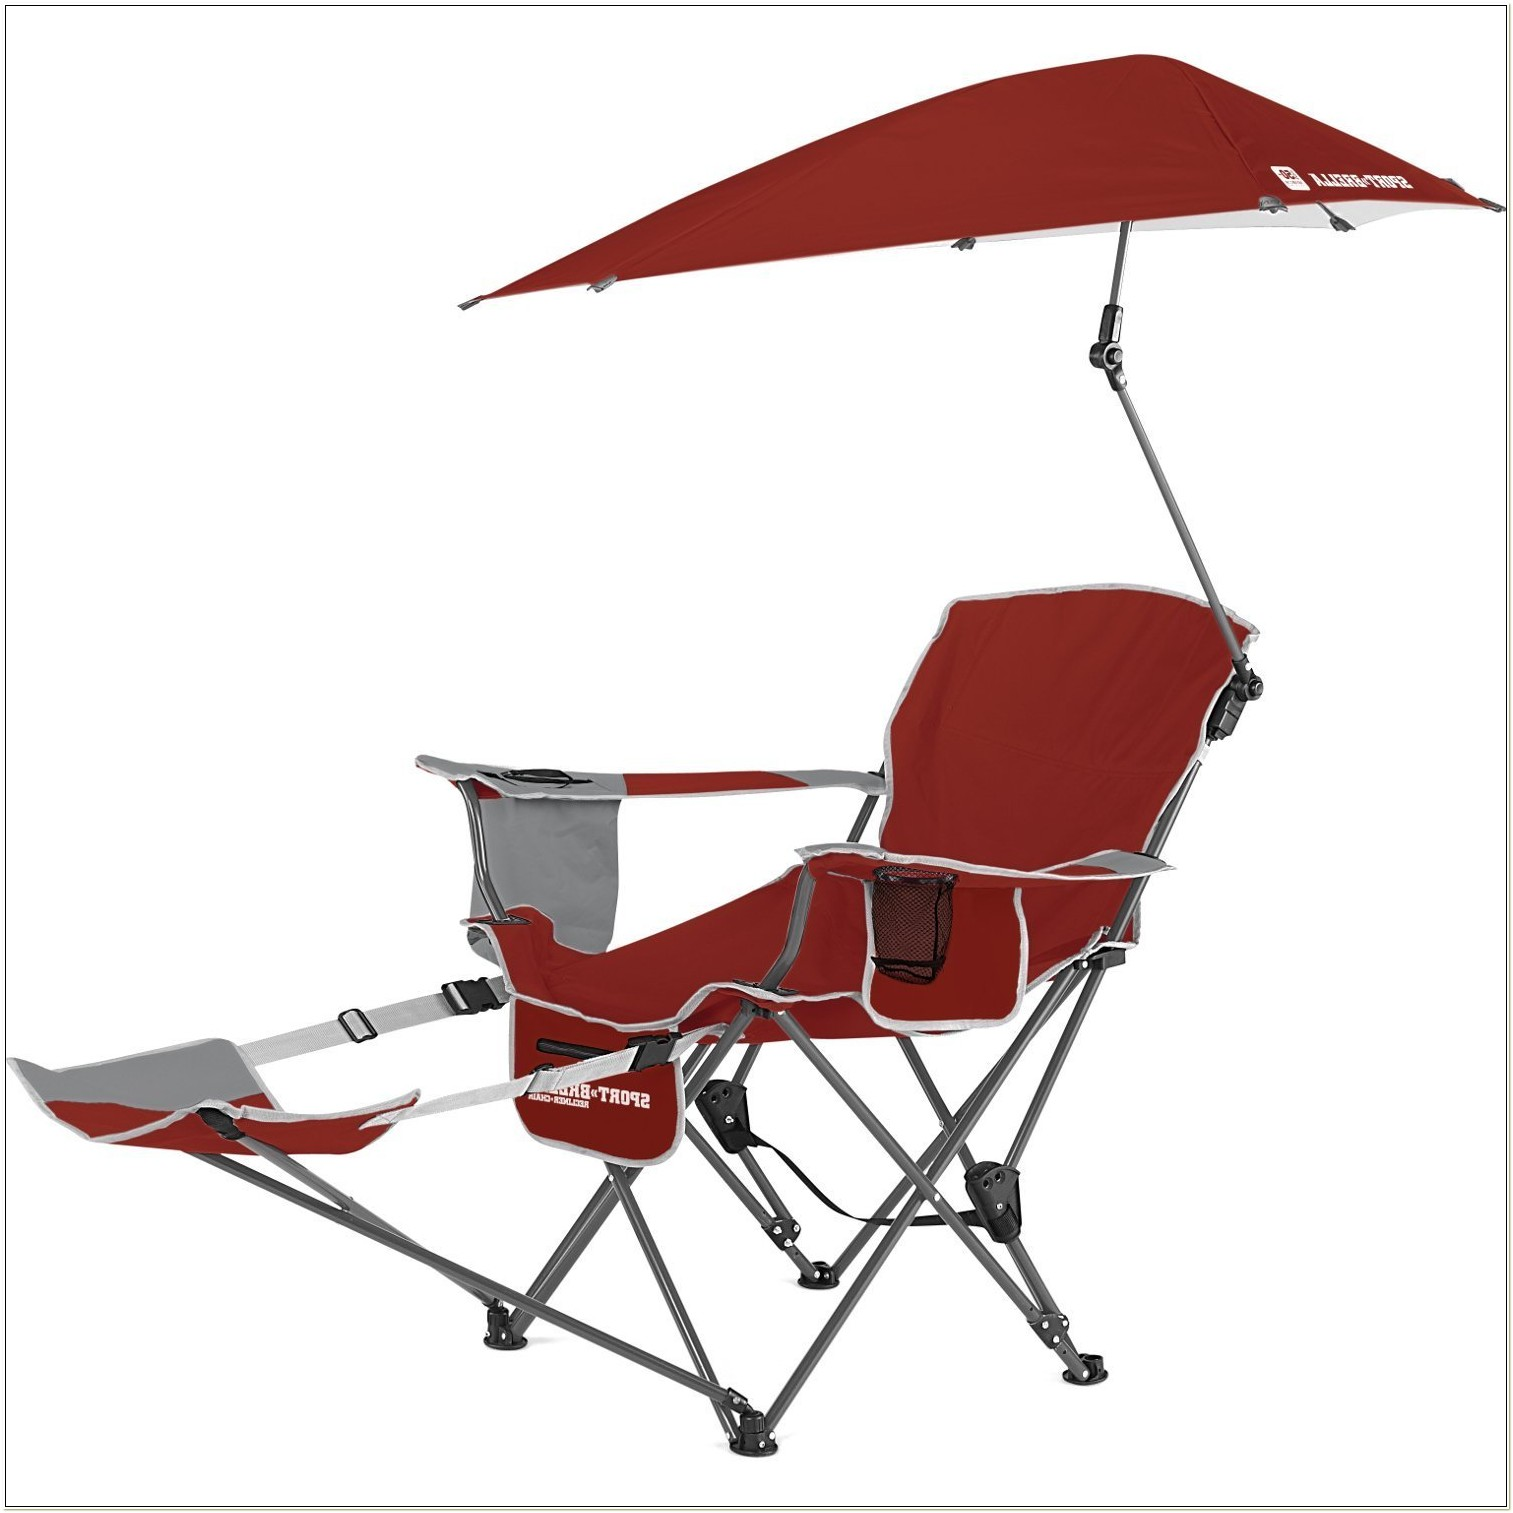 Camping Chair With Umbrella And Footrest